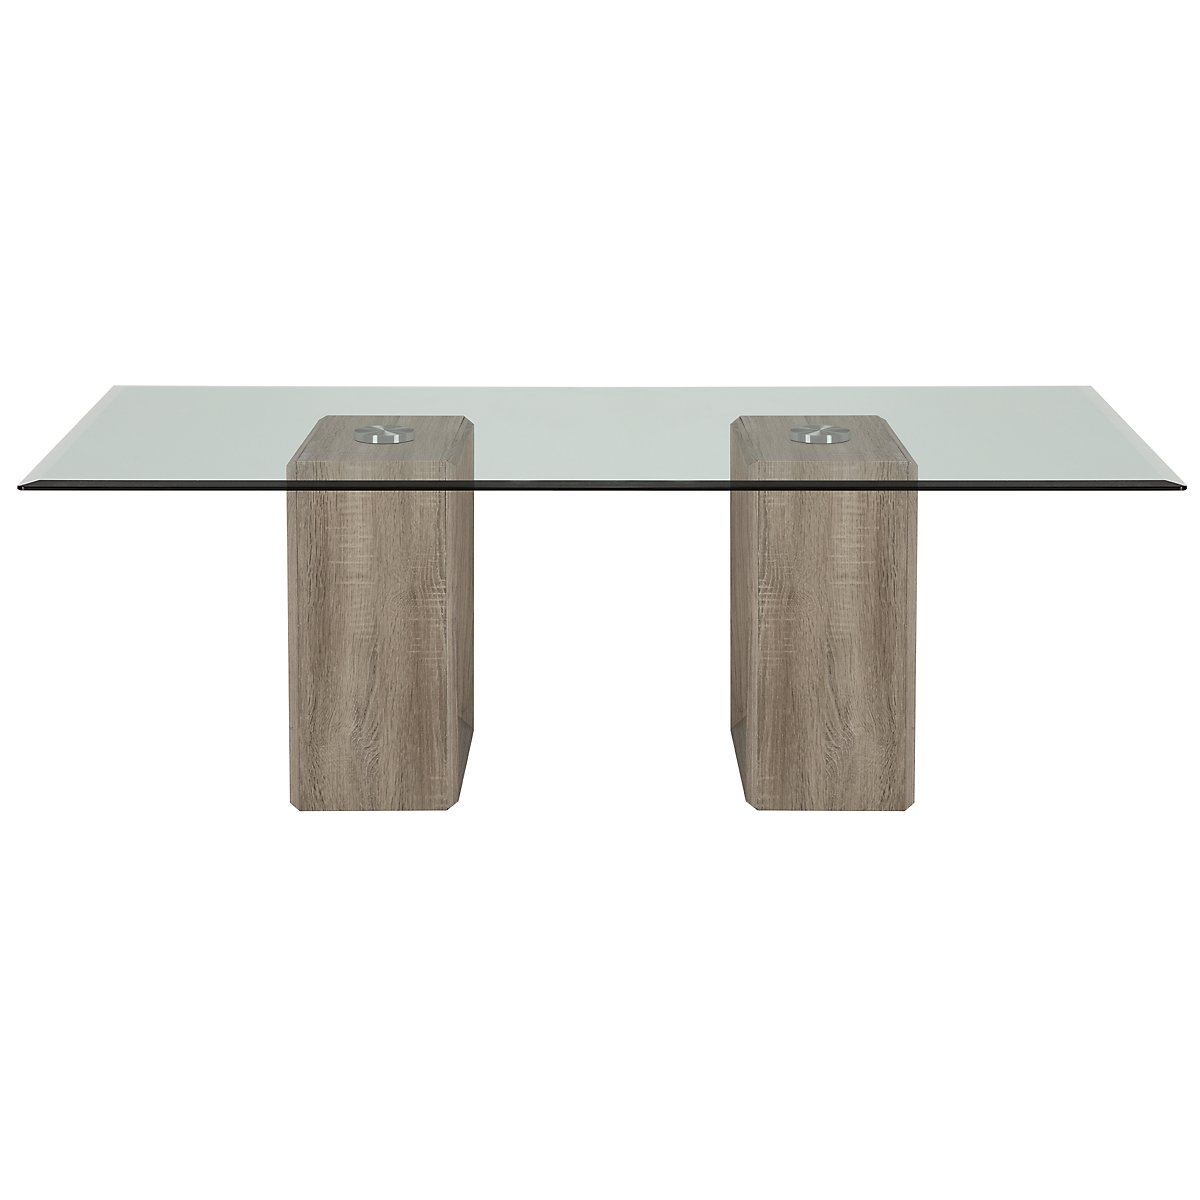 City Furniture Adele2 Light Tone Glass Coffee Table